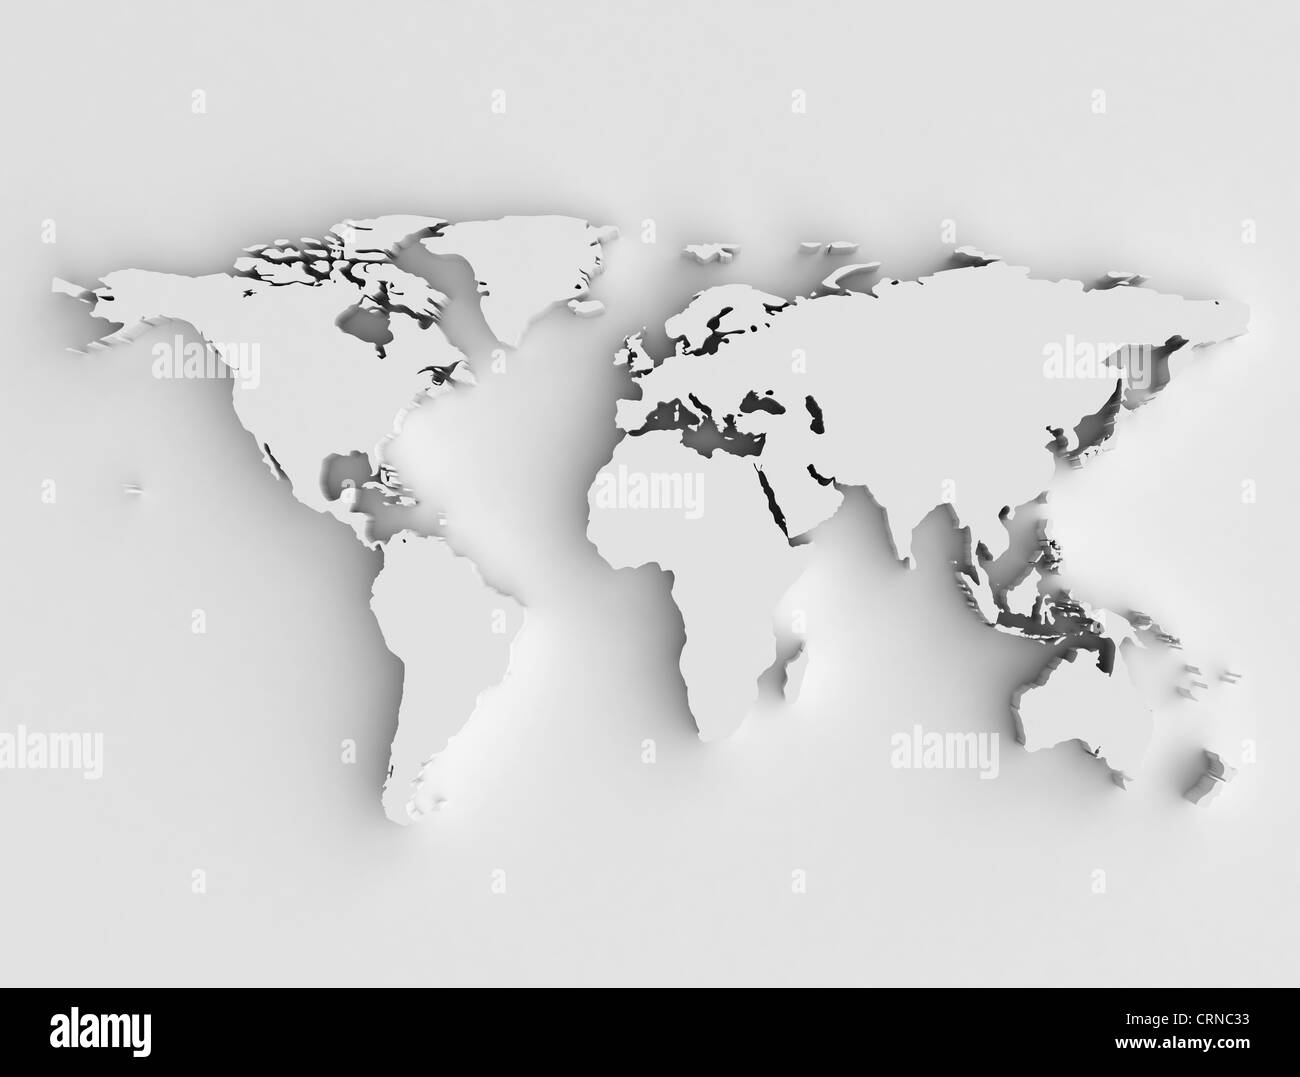 World Map 3d High Resolution Photo Royalty Free Image – Map World High Resolution